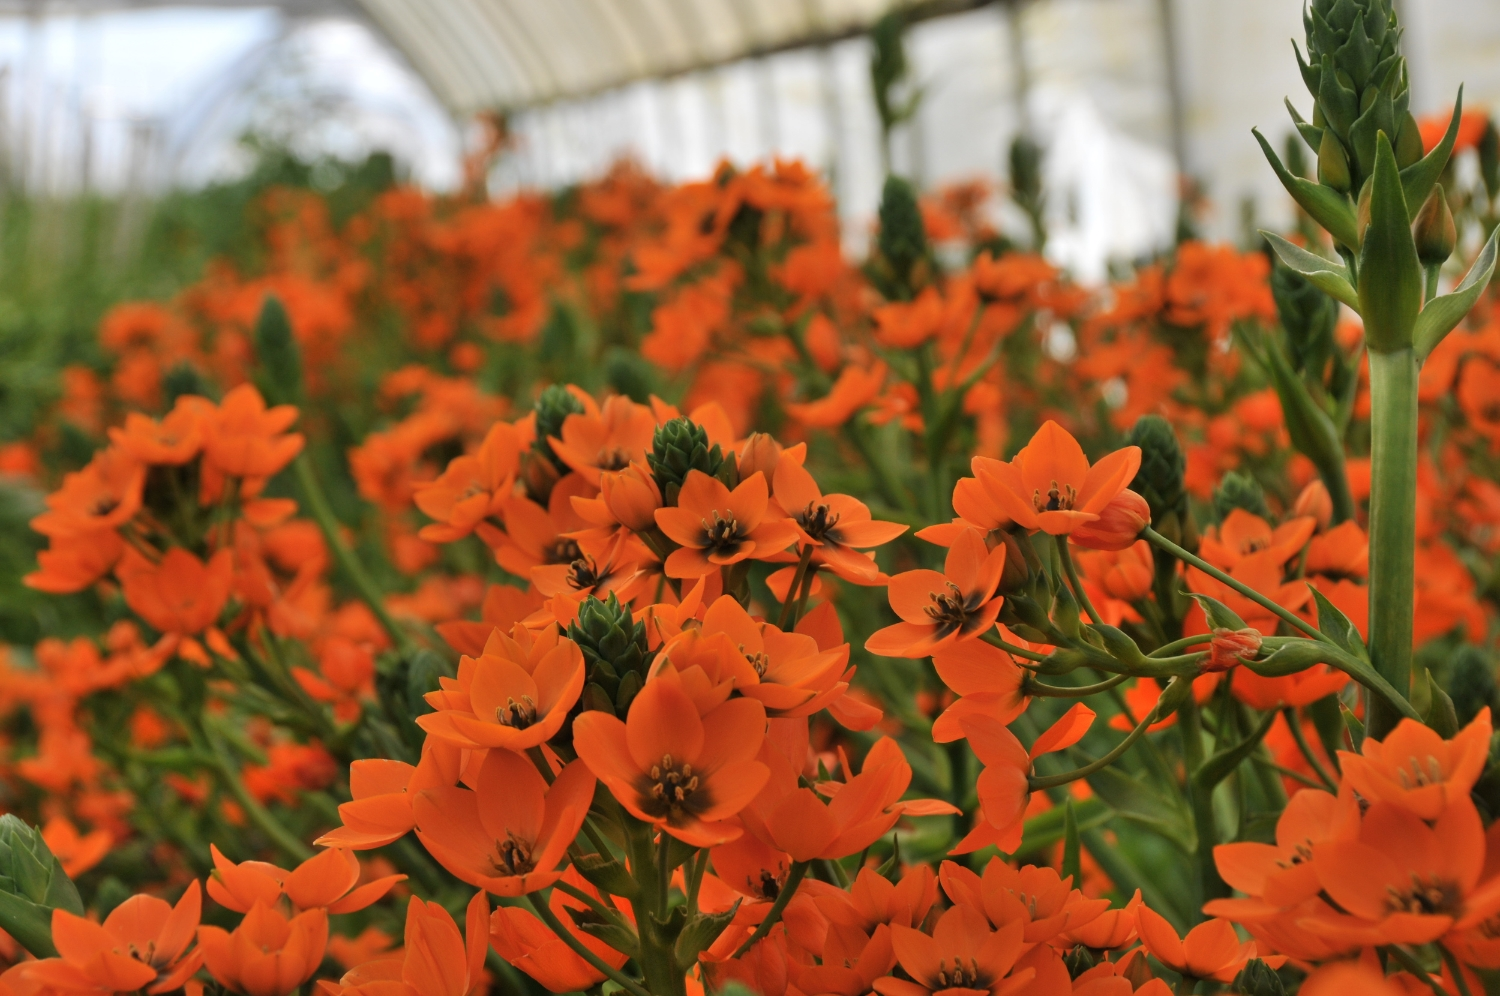 Ornithogalum dubium growing in a hoop house